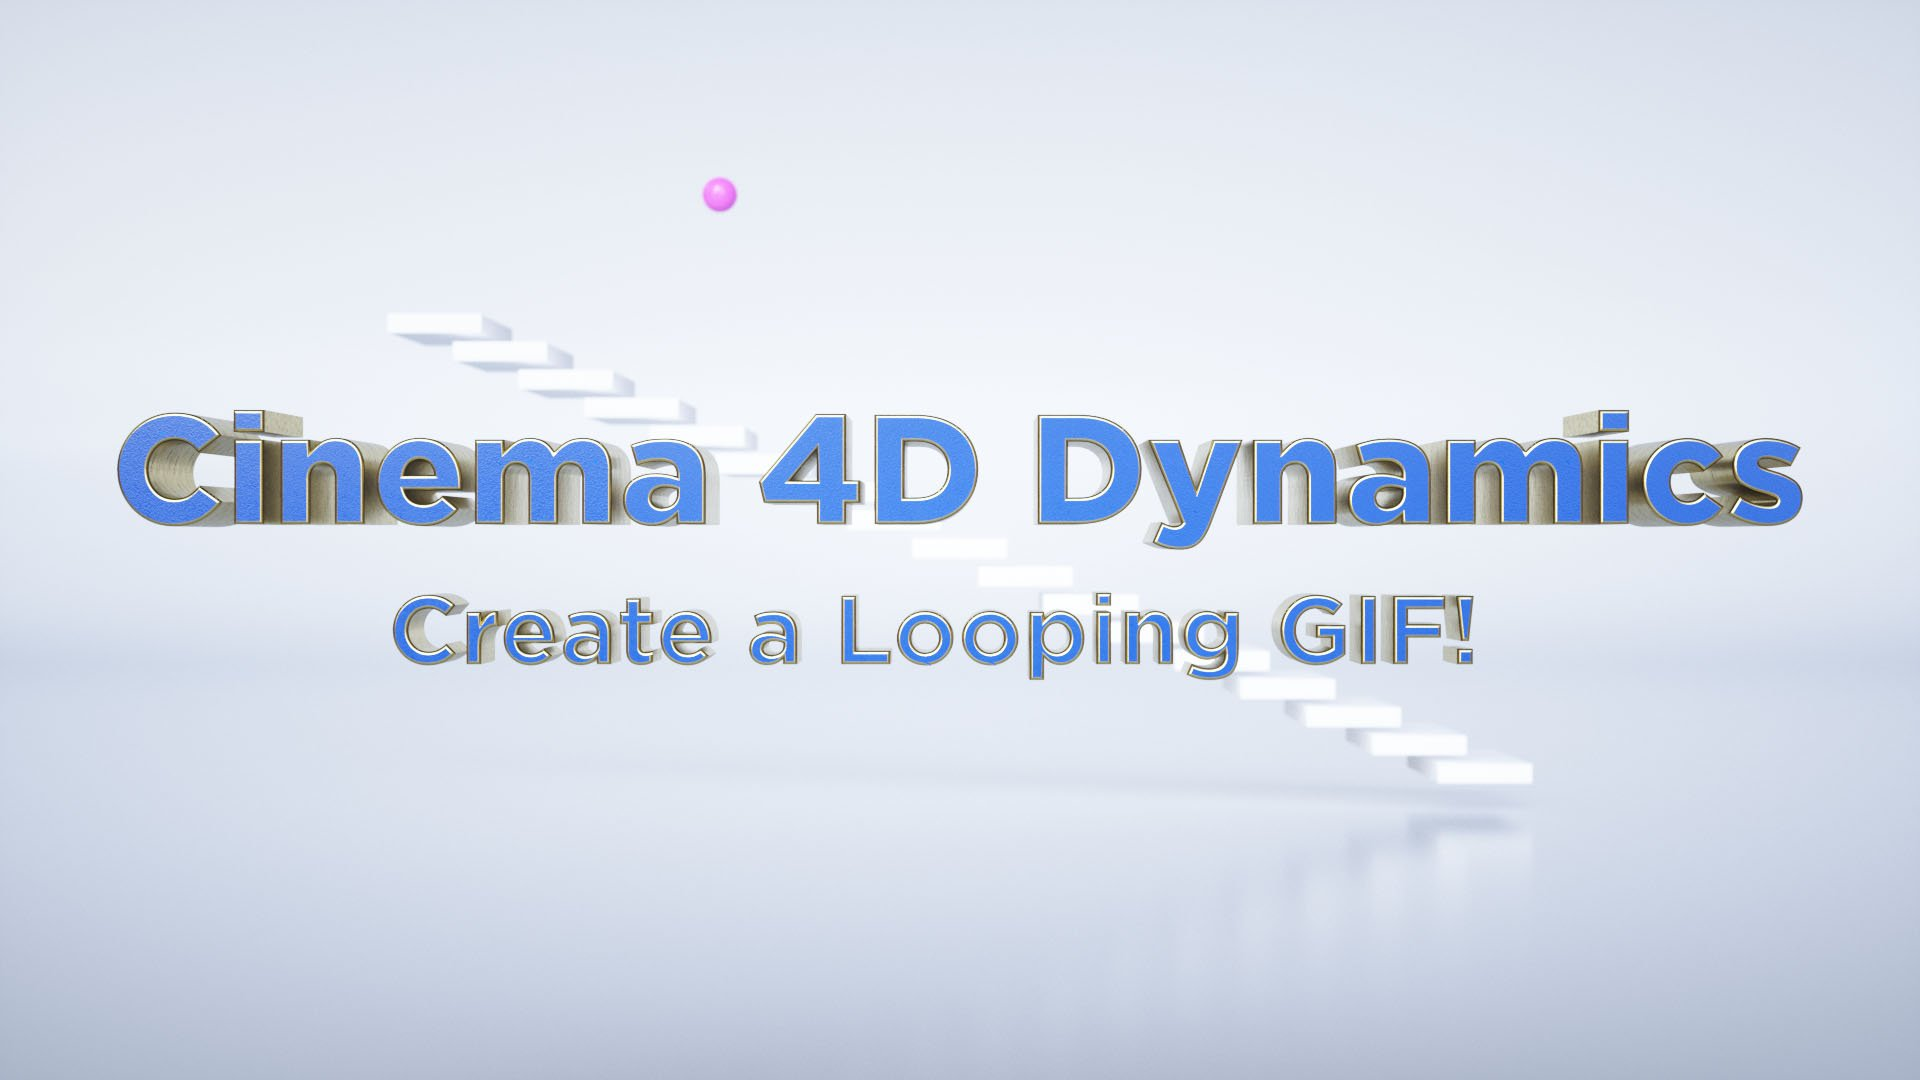 Cinema 4D for Beginners: Create an animated looping GIF with